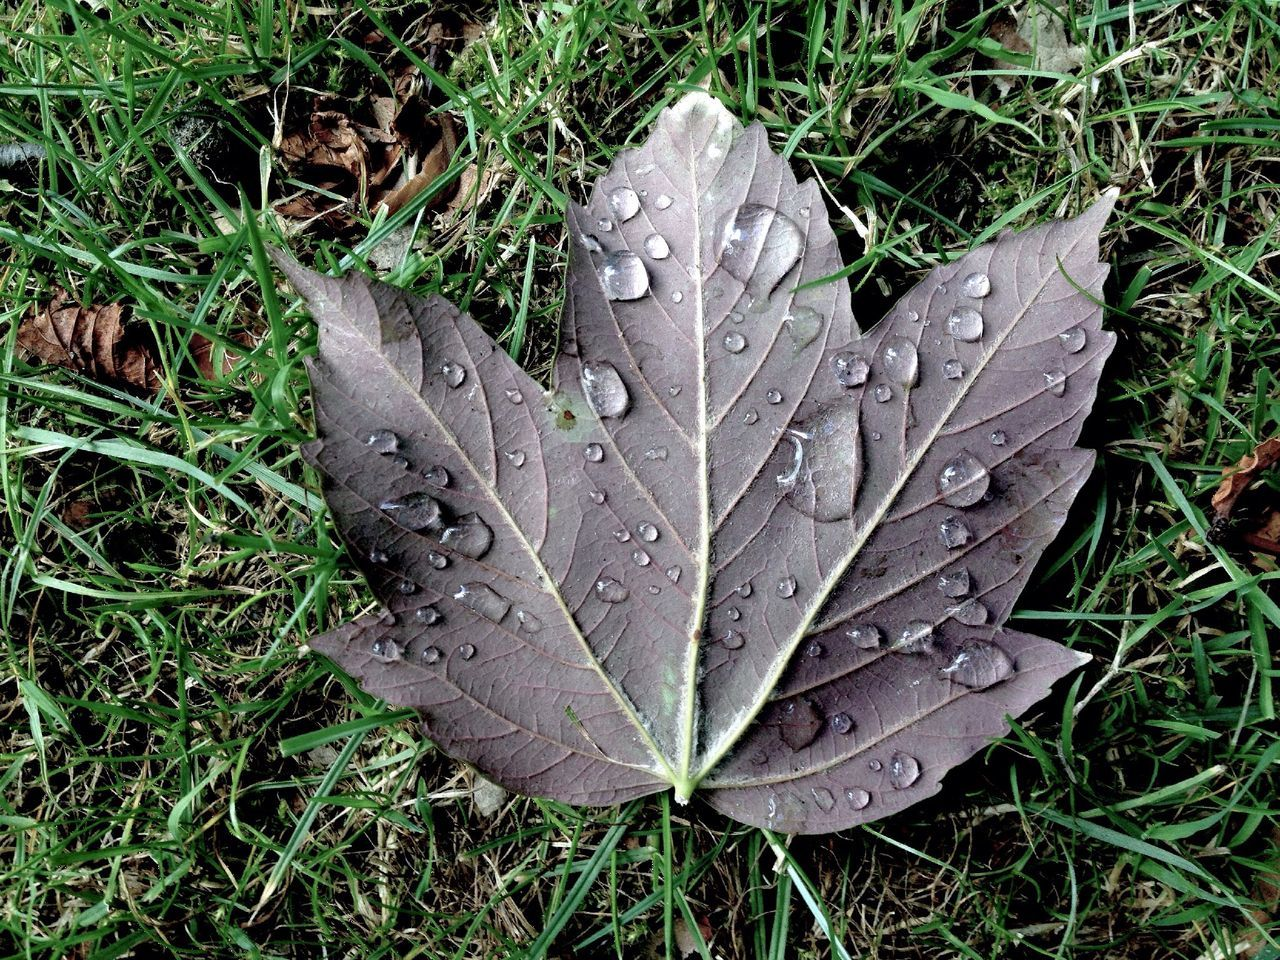 High Angle View of Wet Leaf On Grassy Field